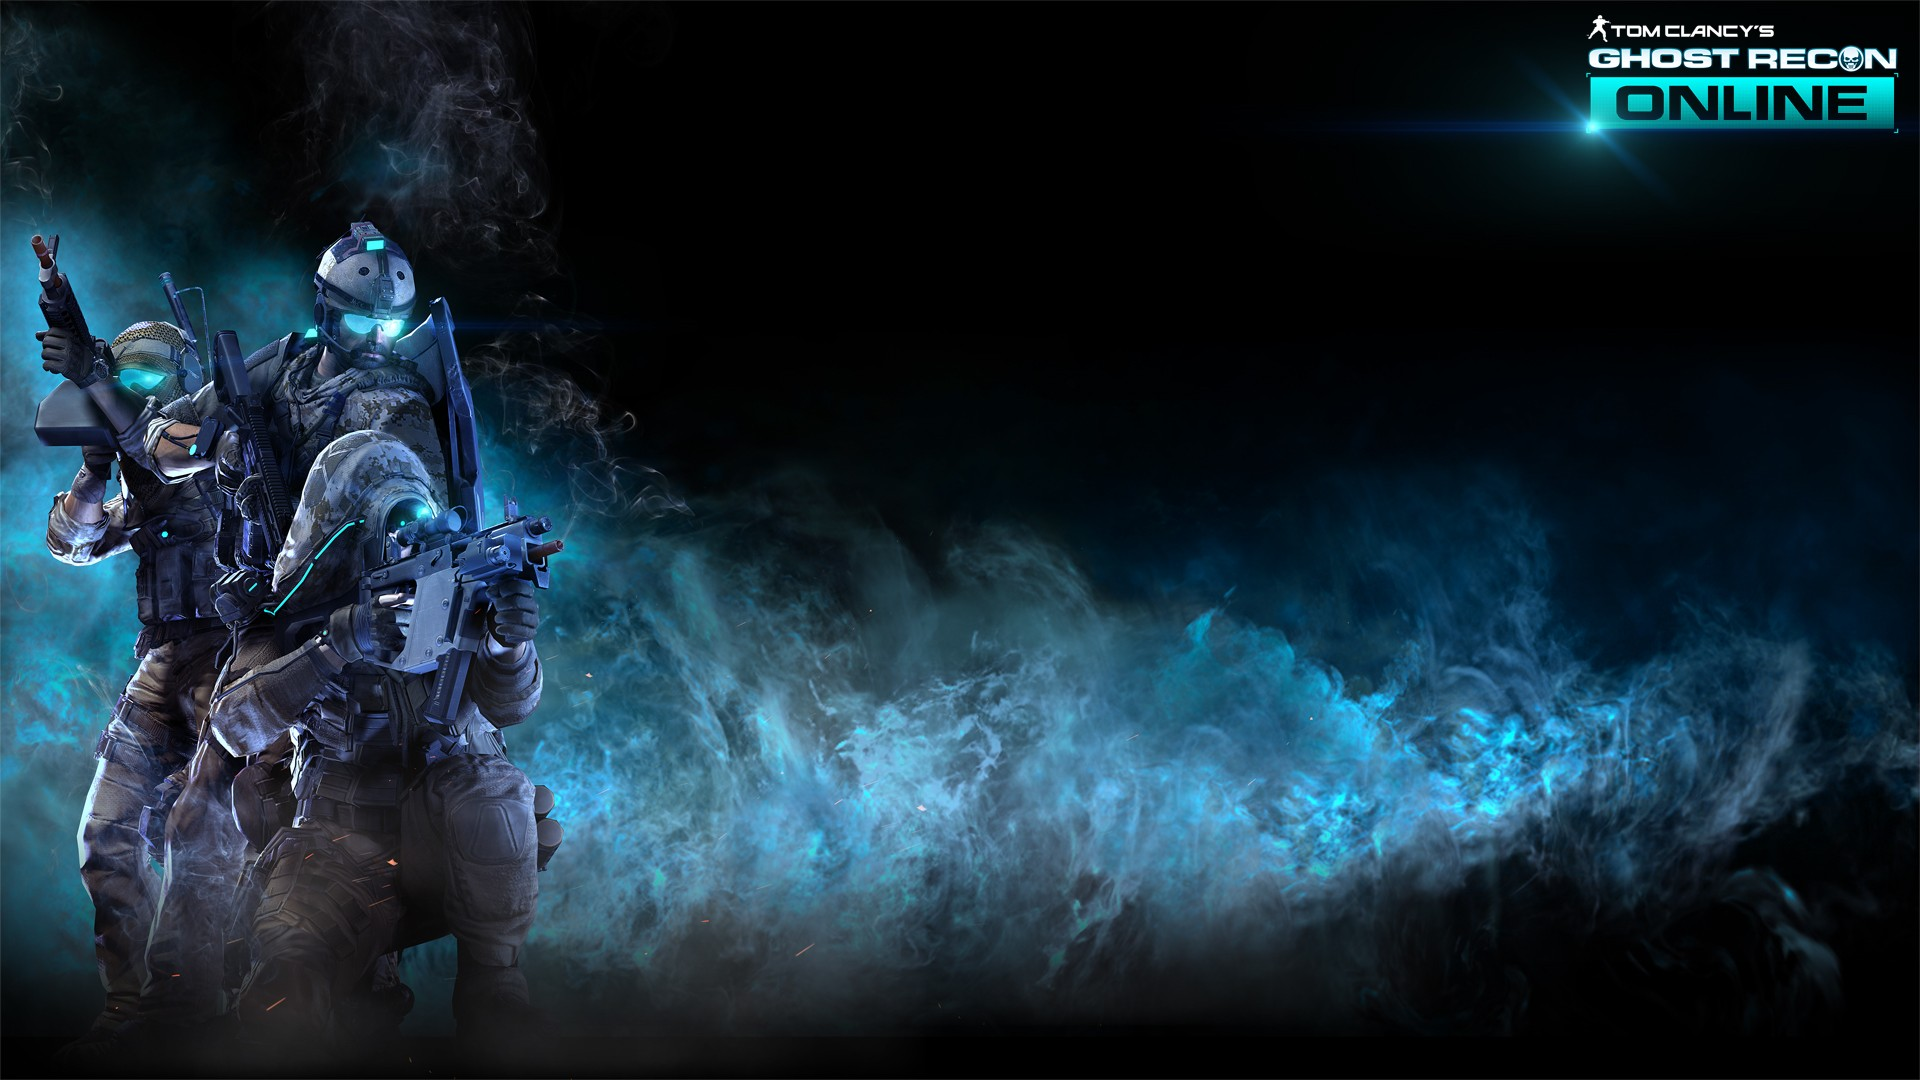 Mw2 Ghost Wallpaper Hd 2013 Tom Clancy S Ghost Recon Online Wallpapers Hd